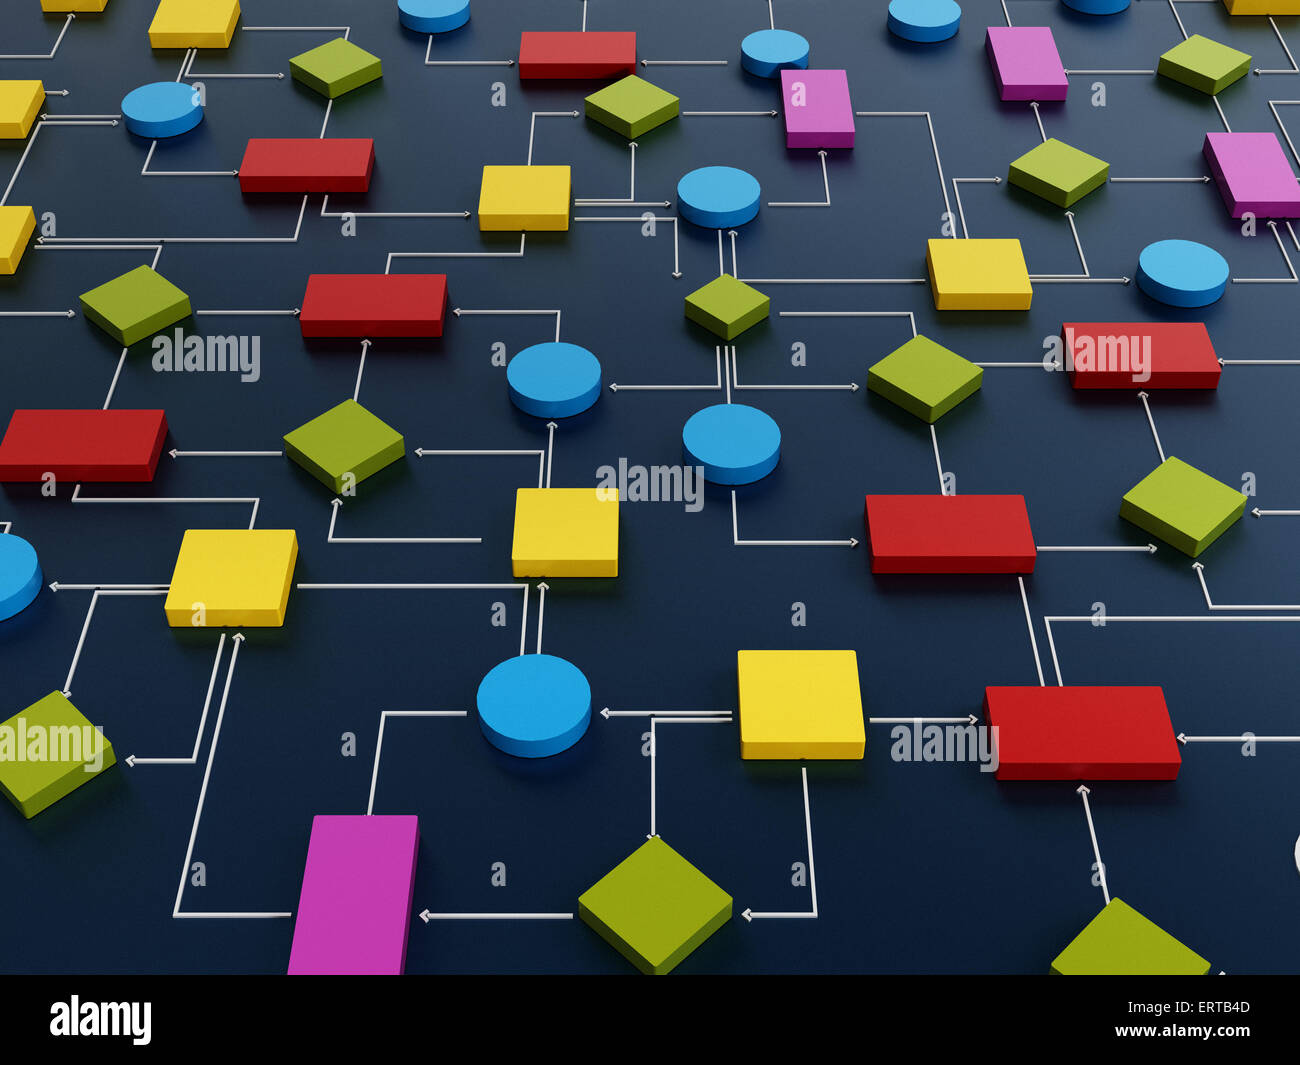 Diagram Stockfotos & Diagram Bilder - Seite 2 - Alamy